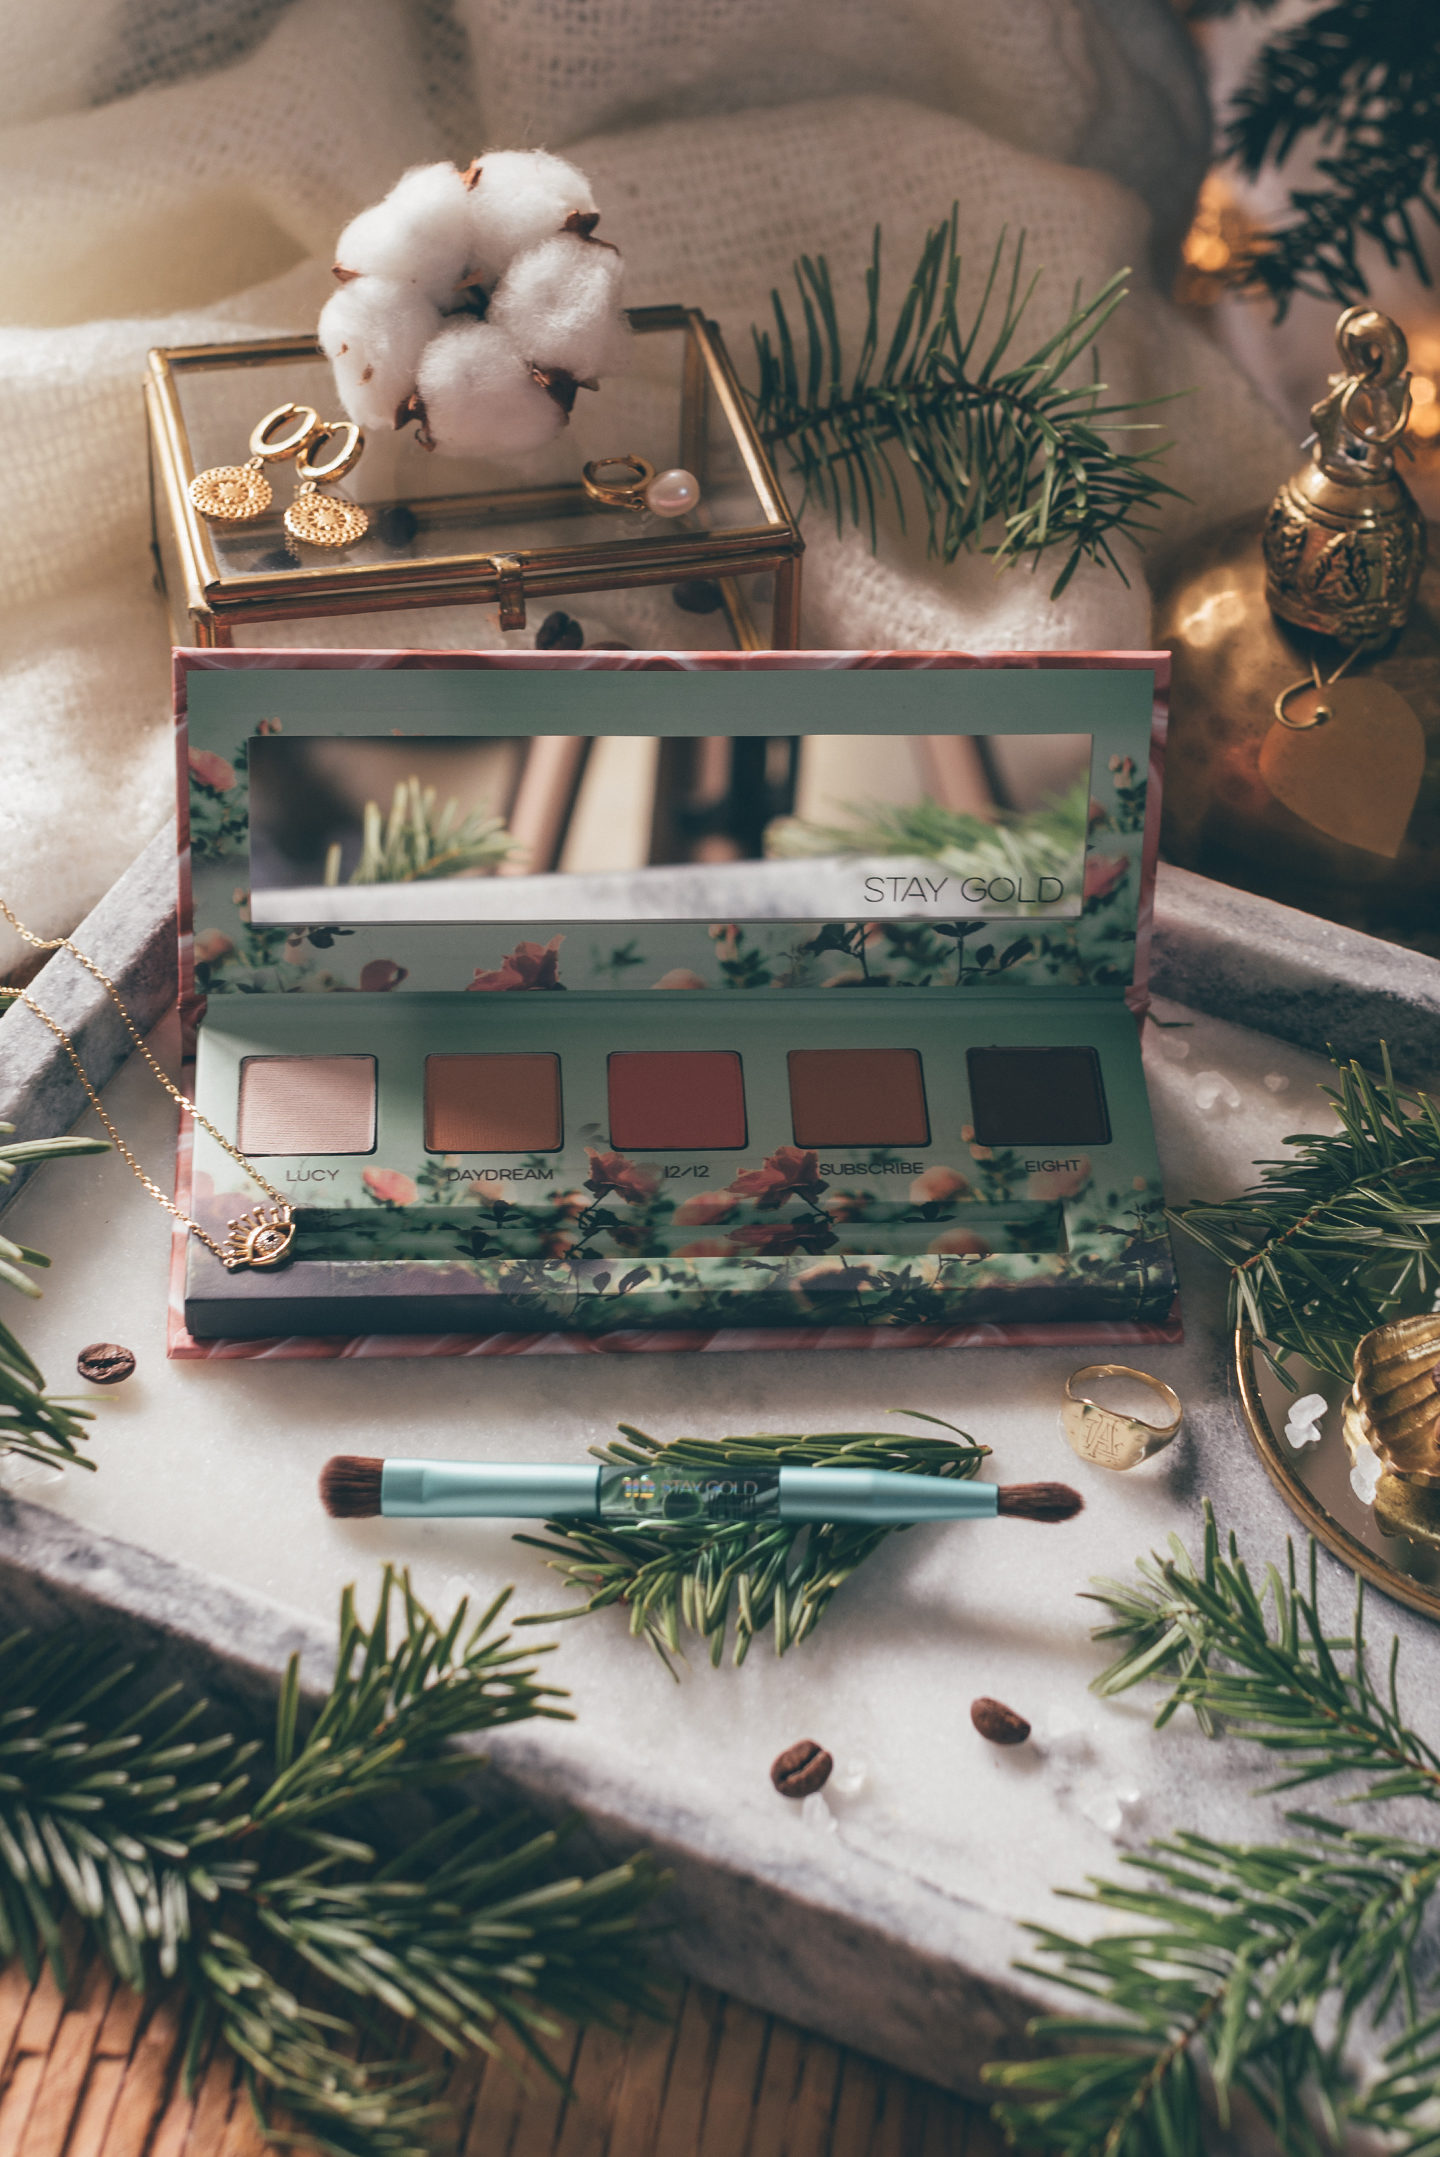 Gift Guide Cruelty Free Beauty Linda's Wholesome Life Stay Gold